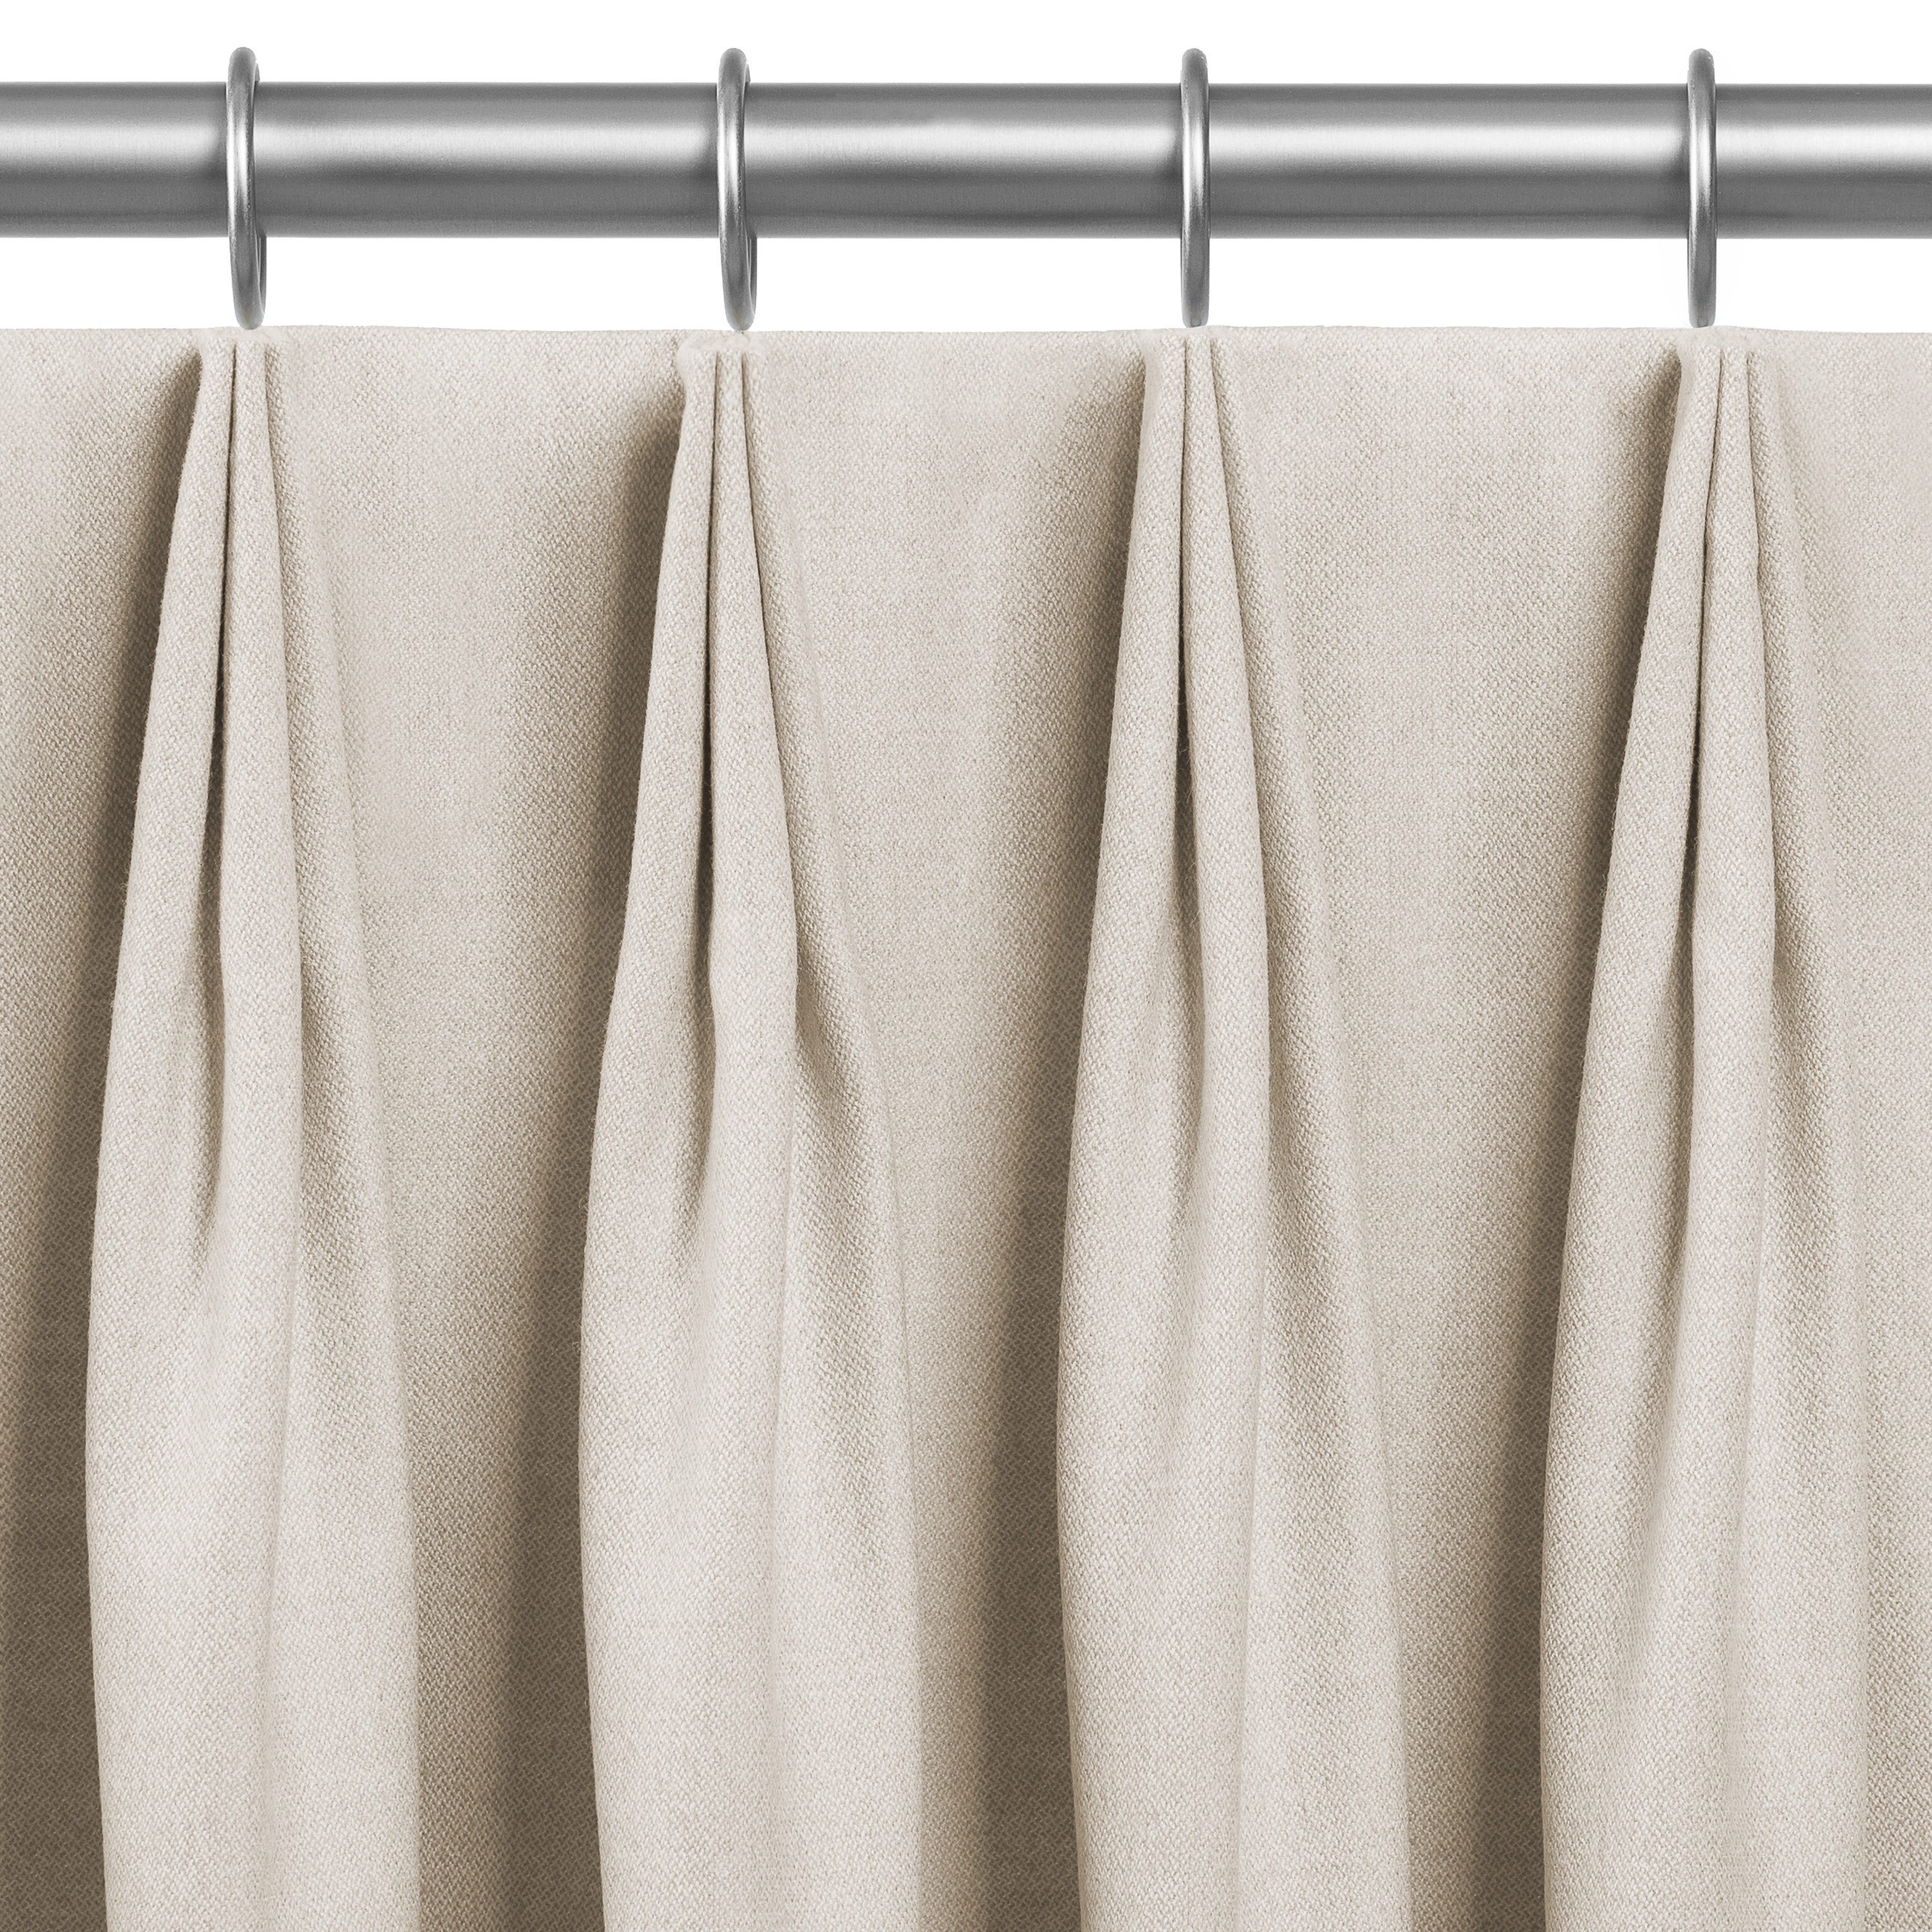 Box Pleat Curtains Inverted Pleat Drapes Archives The Shade Store